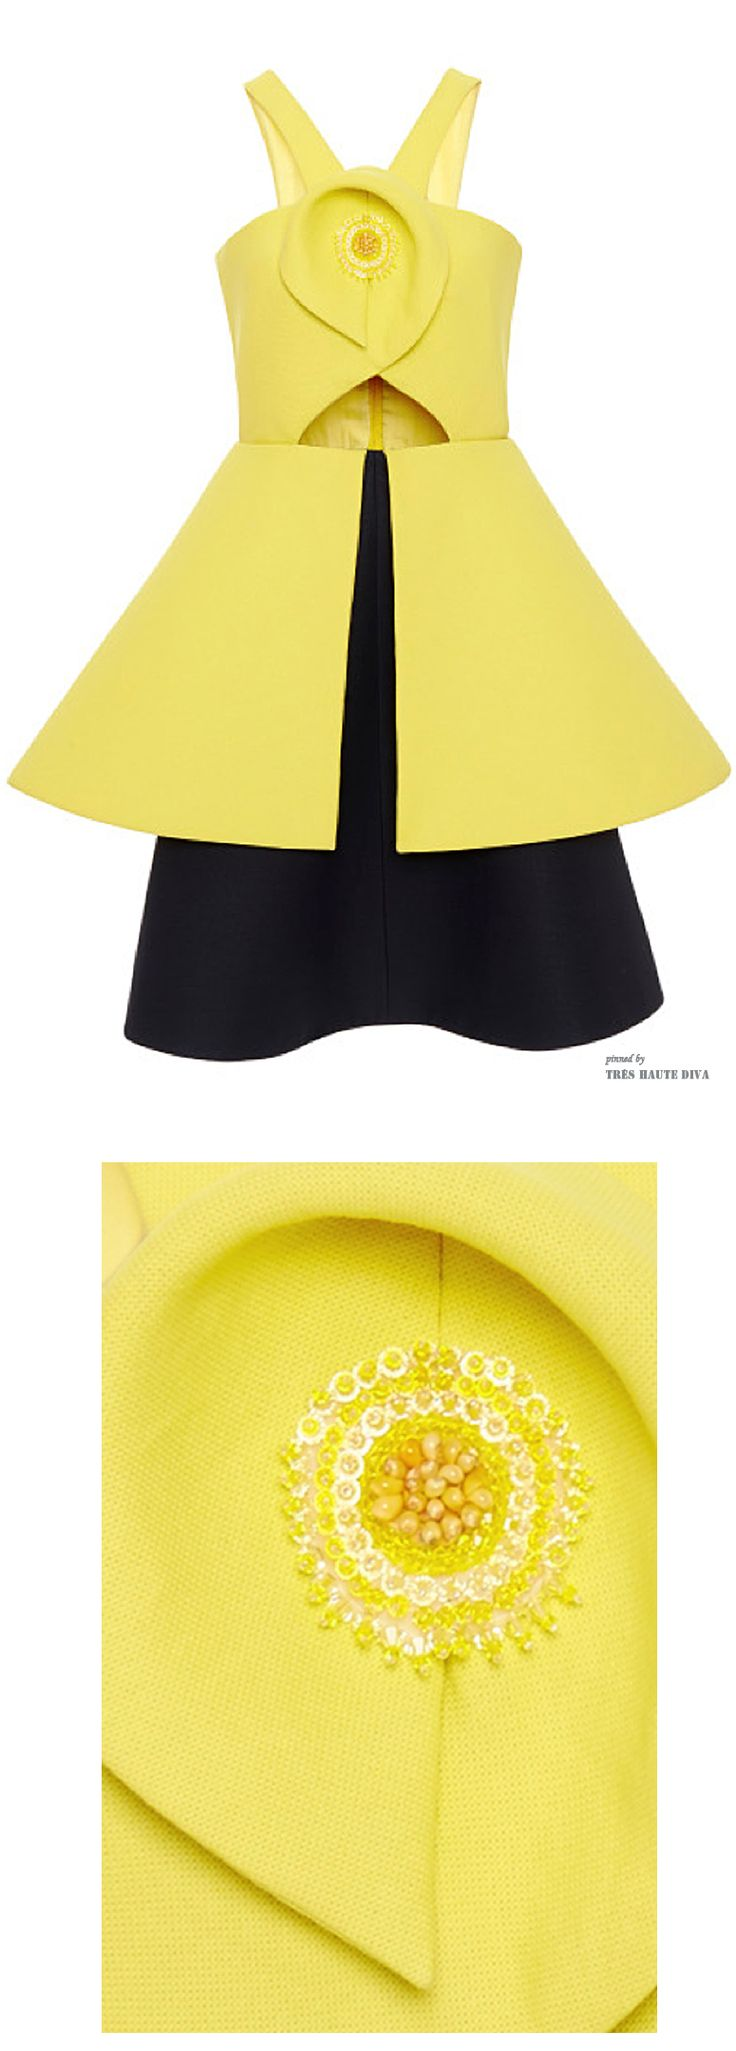 #NYFW SS 2015 Delposo Lemon Yellow Double Paper Twill Dress